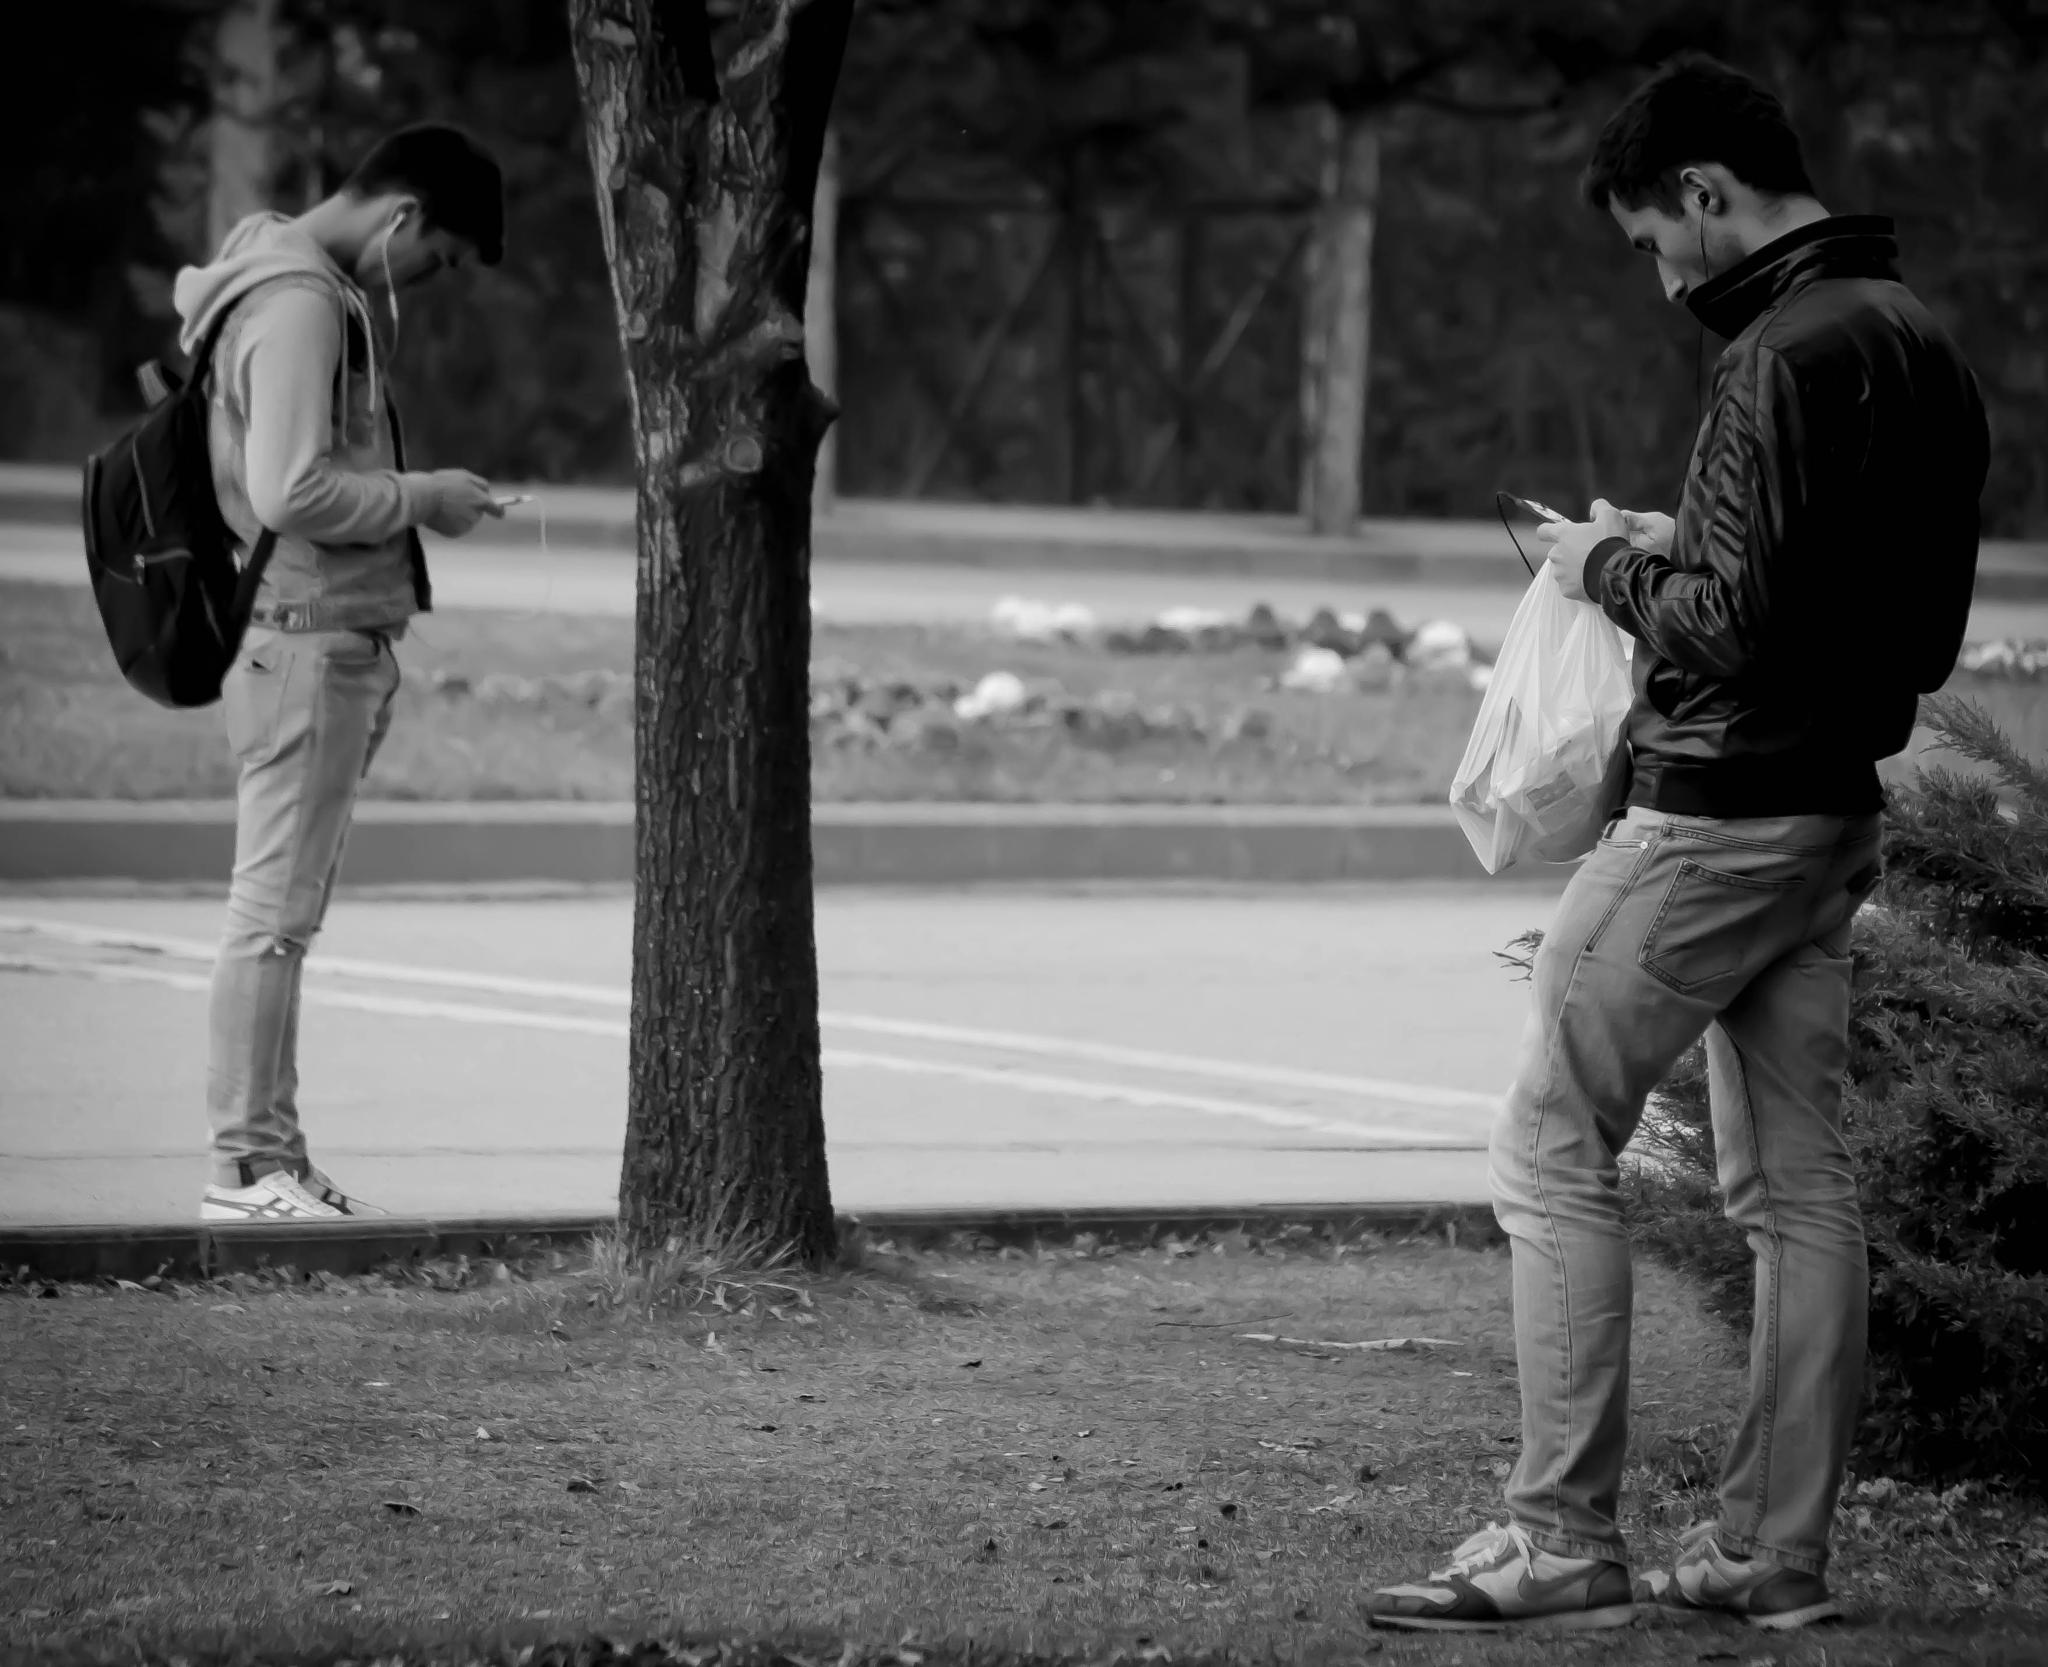 waiting for the bus by Lee Russell Wilkes